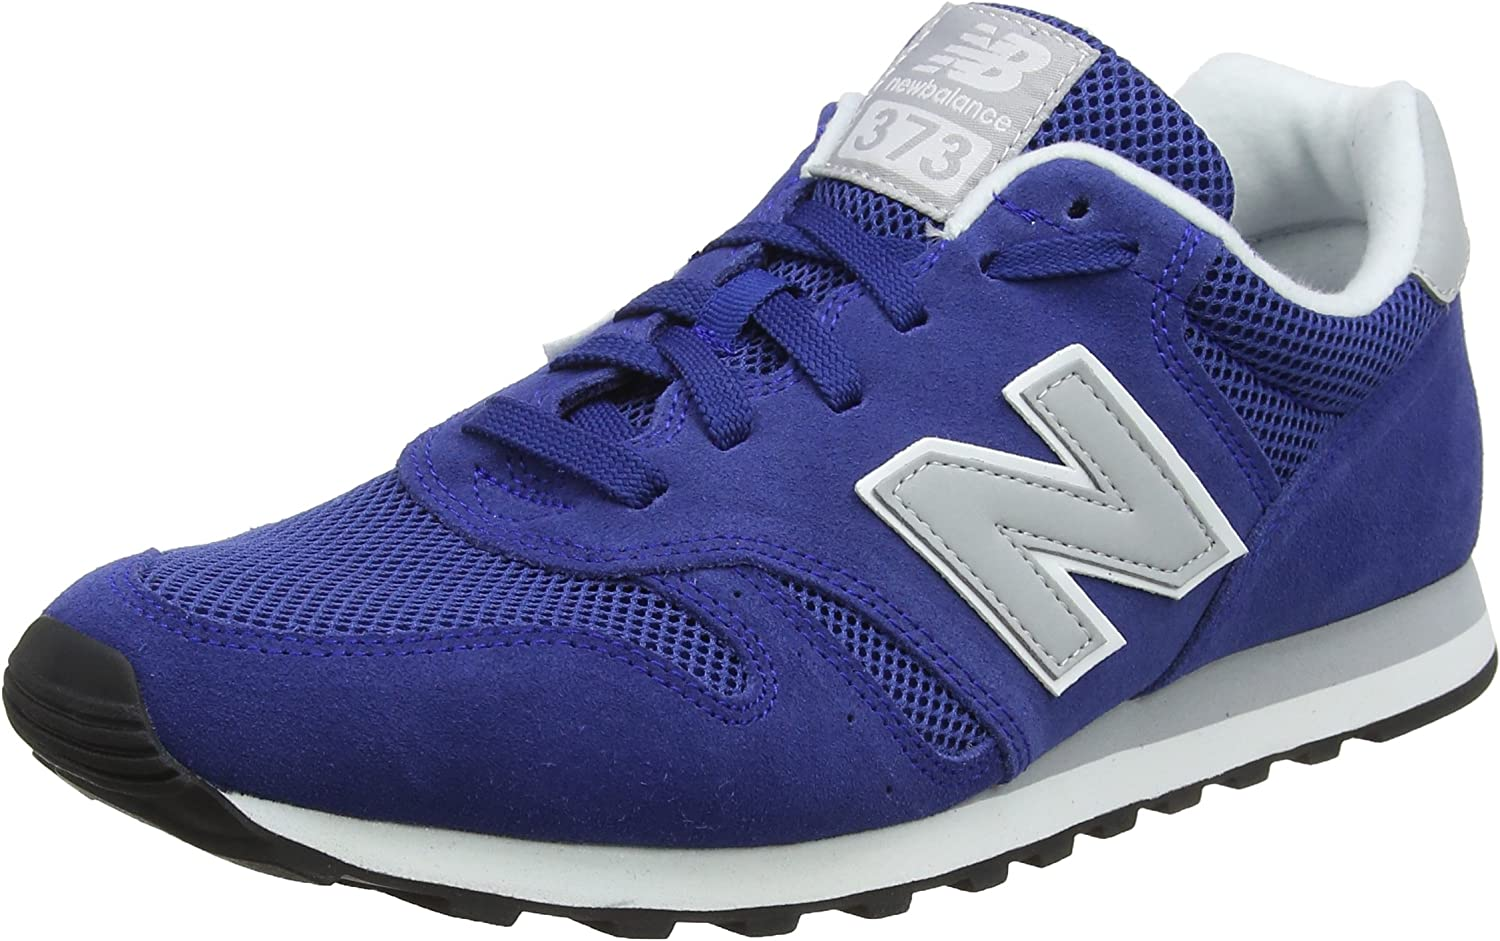 New Balance Men's 373 Suede Trainers, bluee